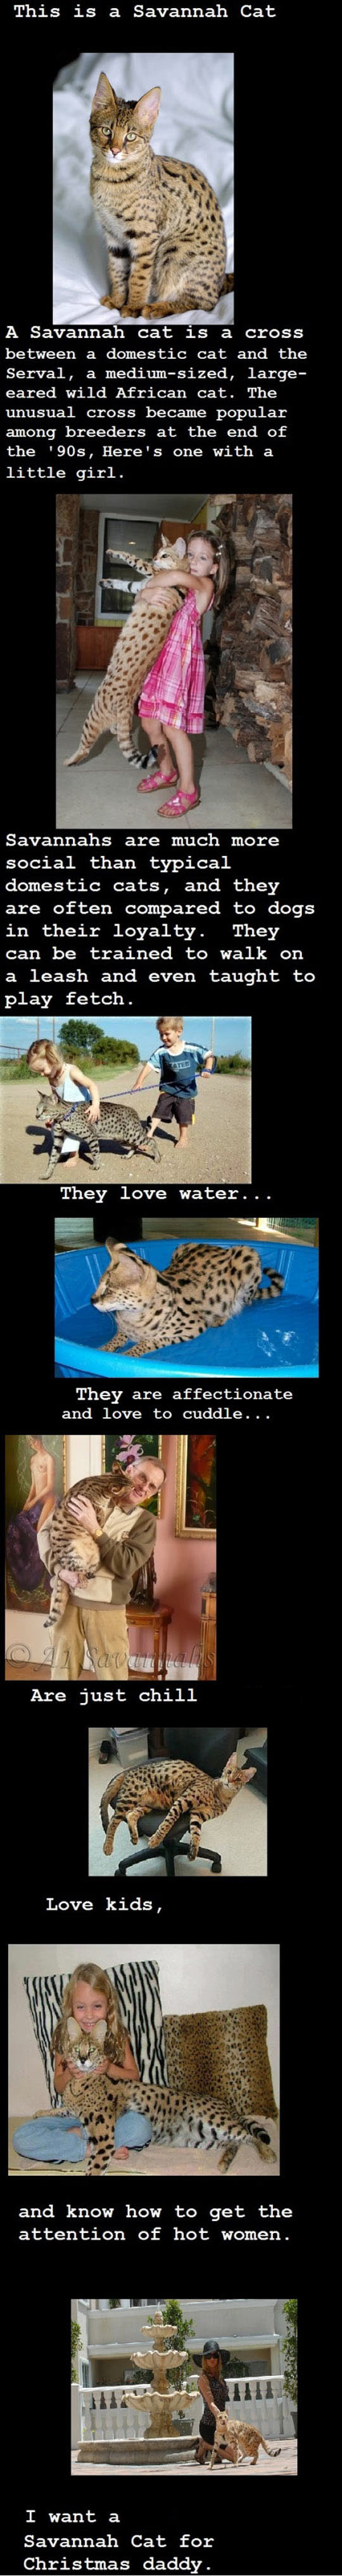 A Savannah Cat Right Now